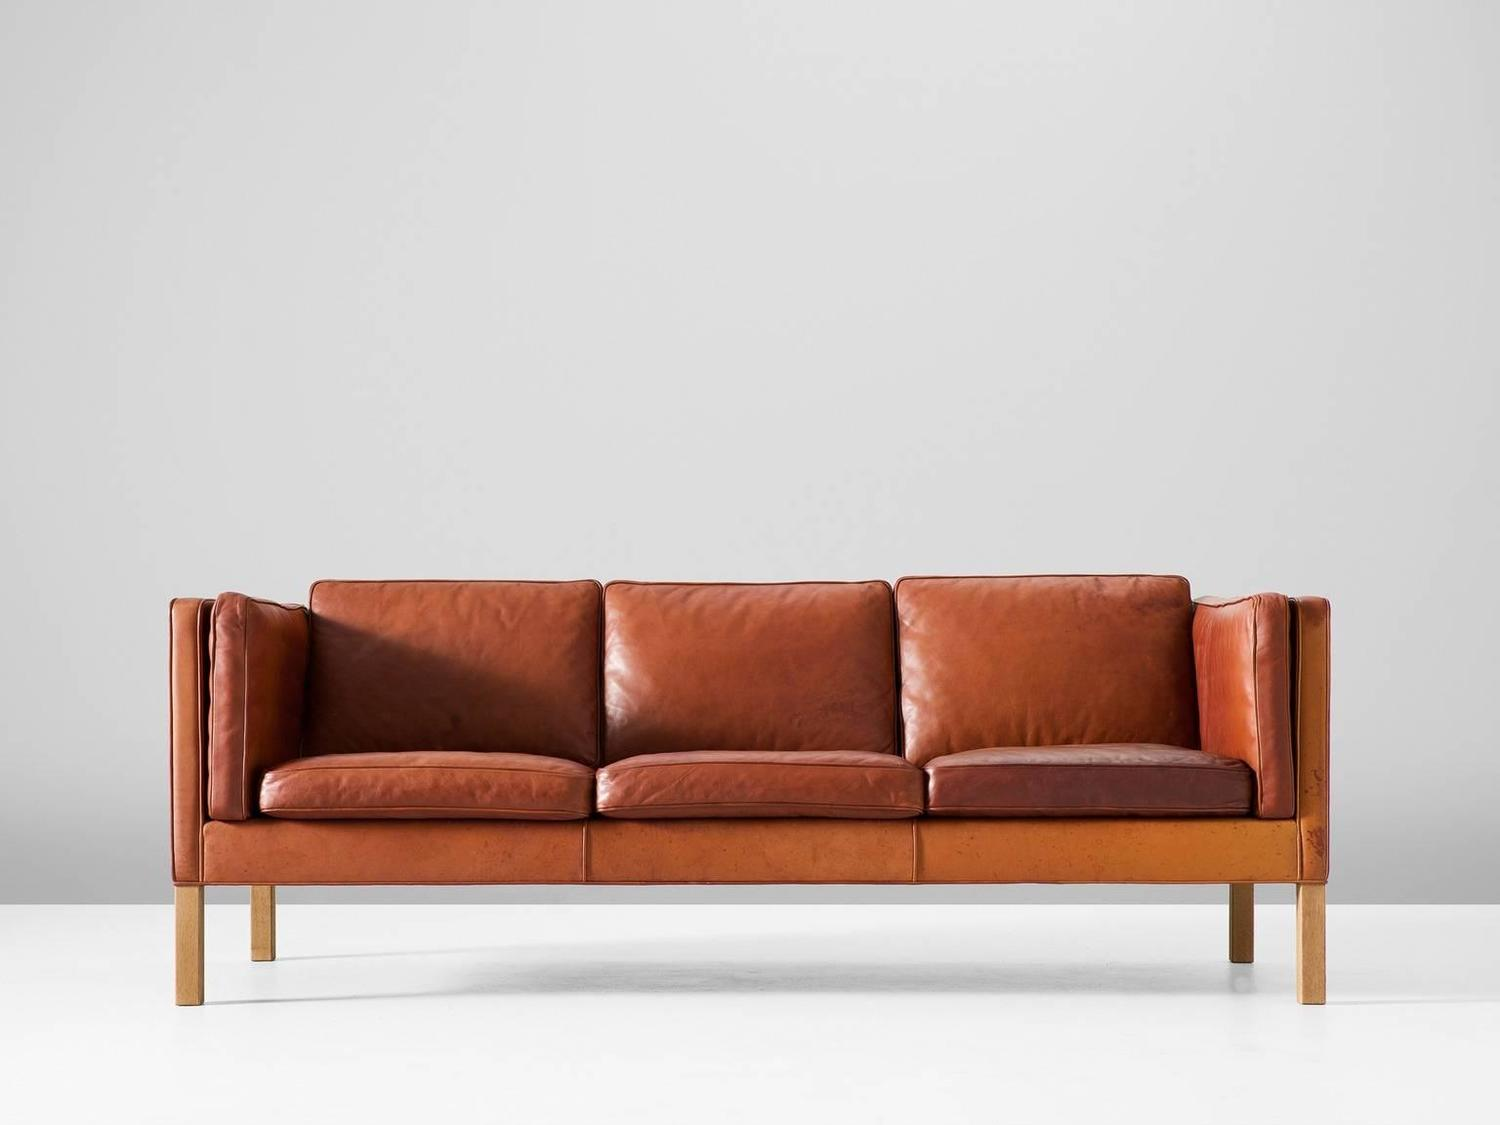 b rge mogensen 2443 sofa in cognac brown leather for sale at 1stdibs. Black Bedroom Furniture Sets. Home Design Ideas